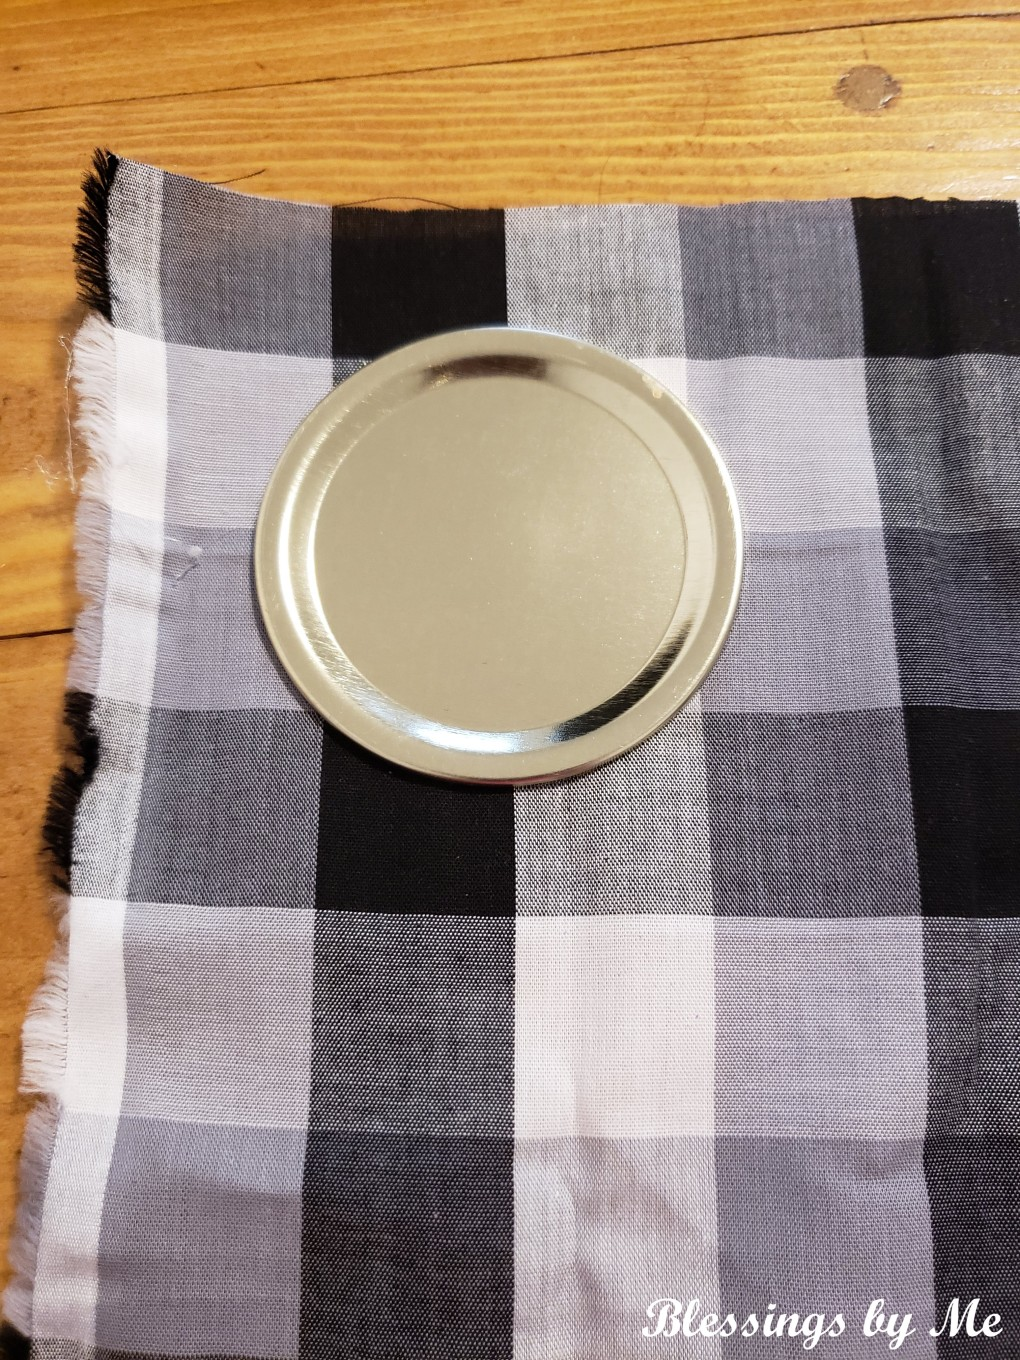 place the mason jar lid on the fabric and cut out a square